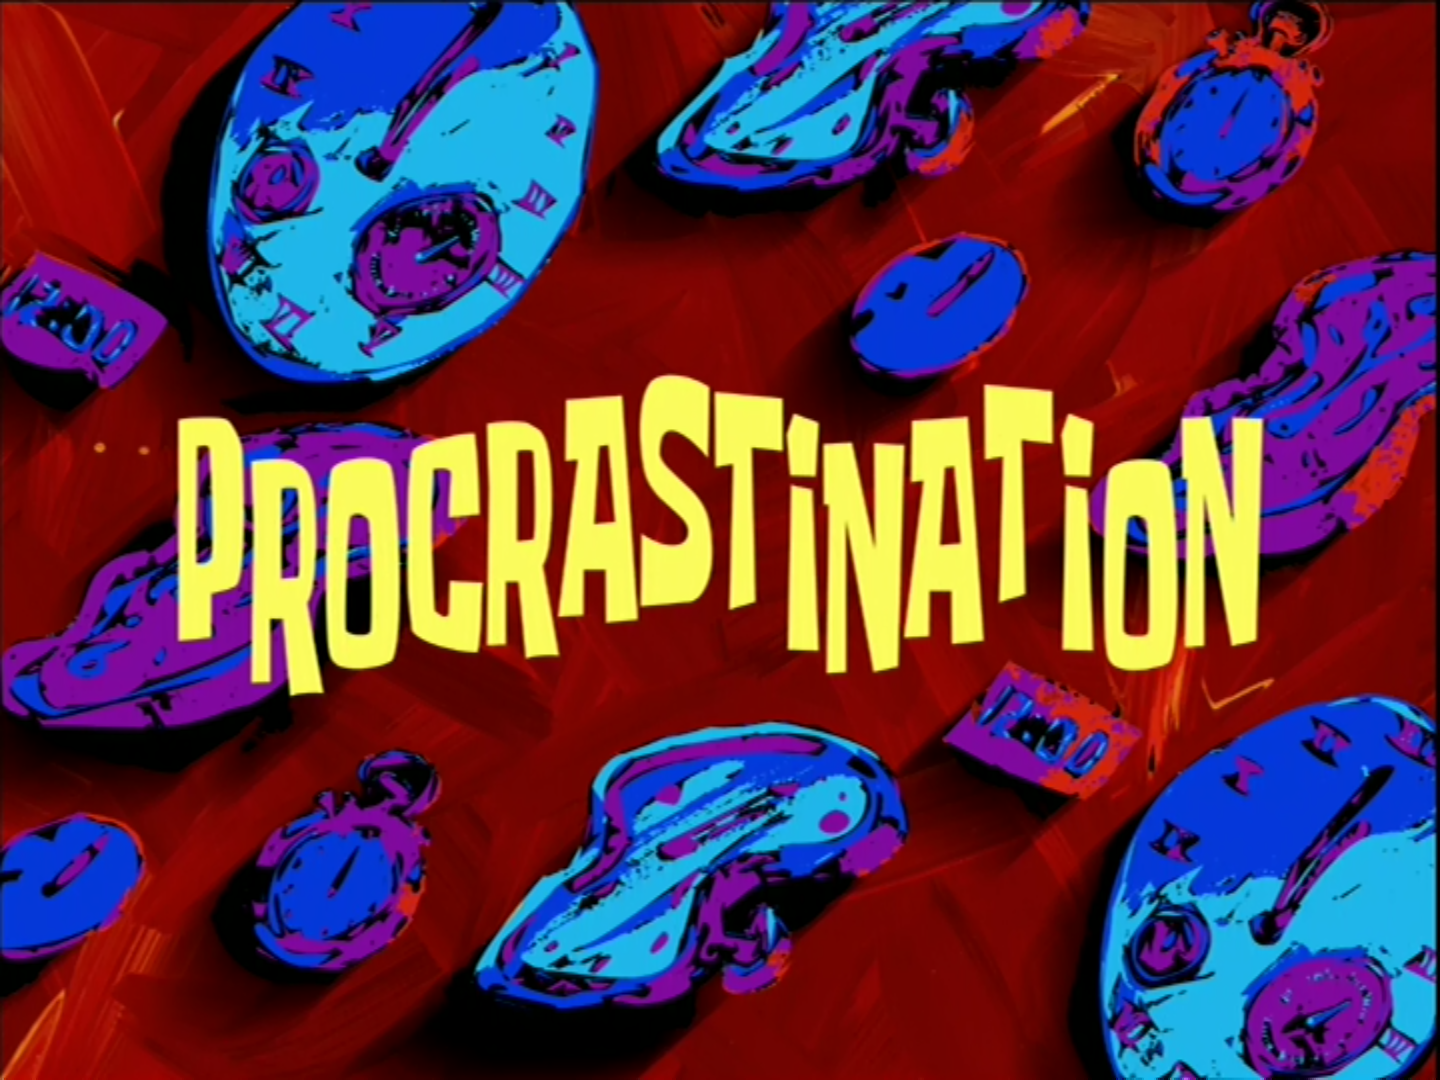 009 Procrastinationtranscript Encyclopedia Spongebobia Fandom Spongebob Writing Essay The Latestcb201806220 Gif Font For Hours Meme Rap Surprising Pencil Quote Full Episode Scene Full